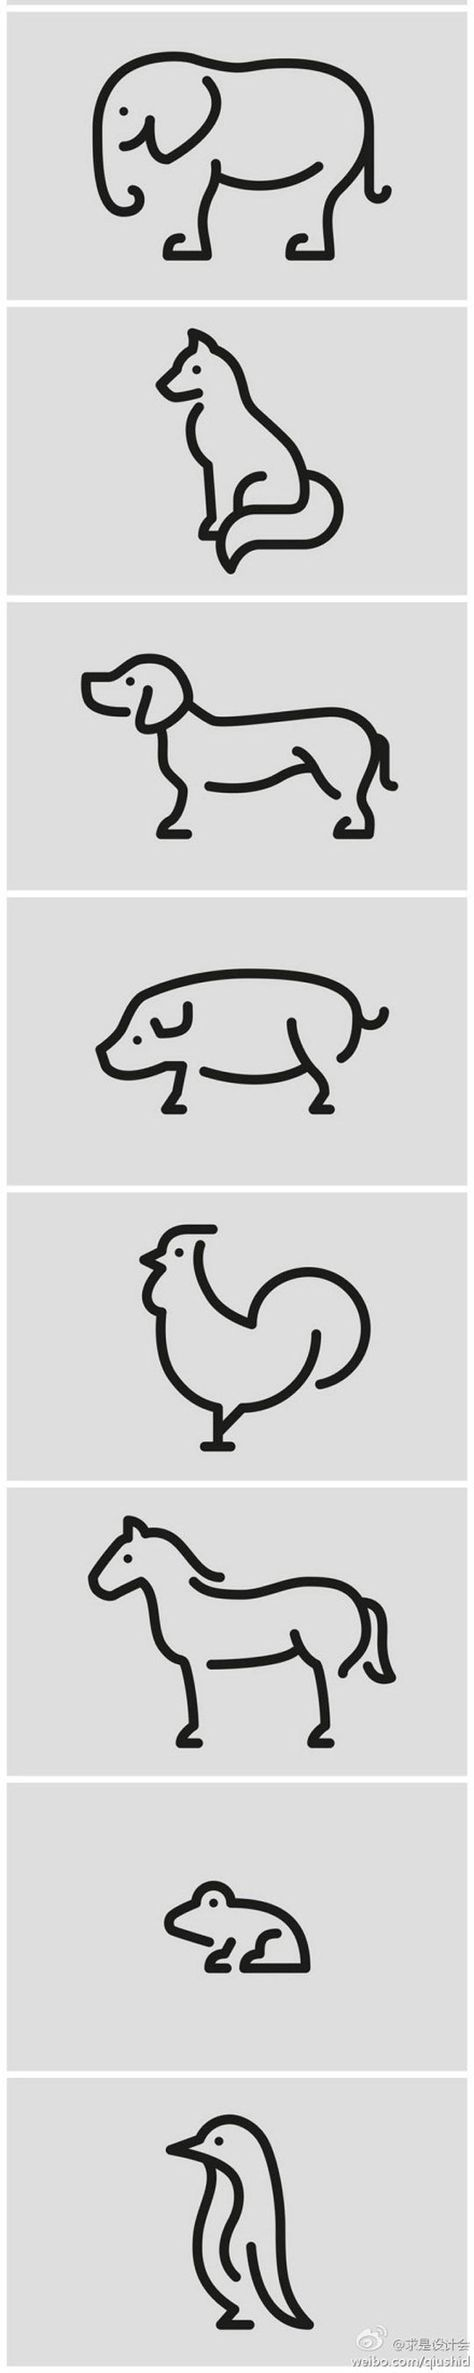 How to draw easy animals: